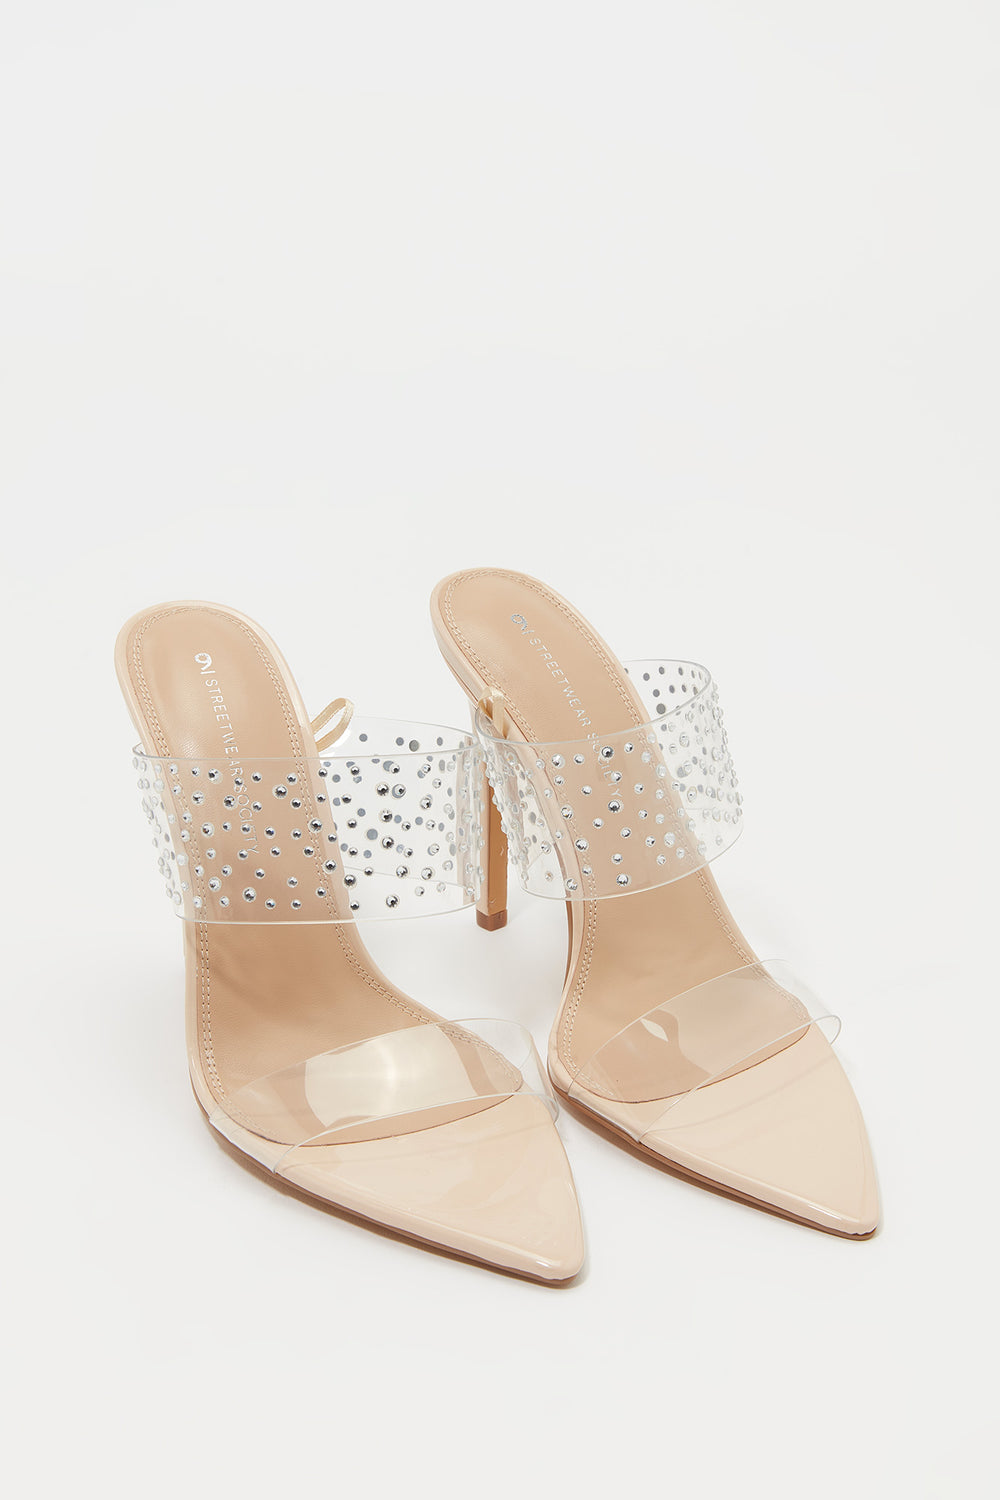 Rhinestone Clear Strap Stiletto Mule Natural